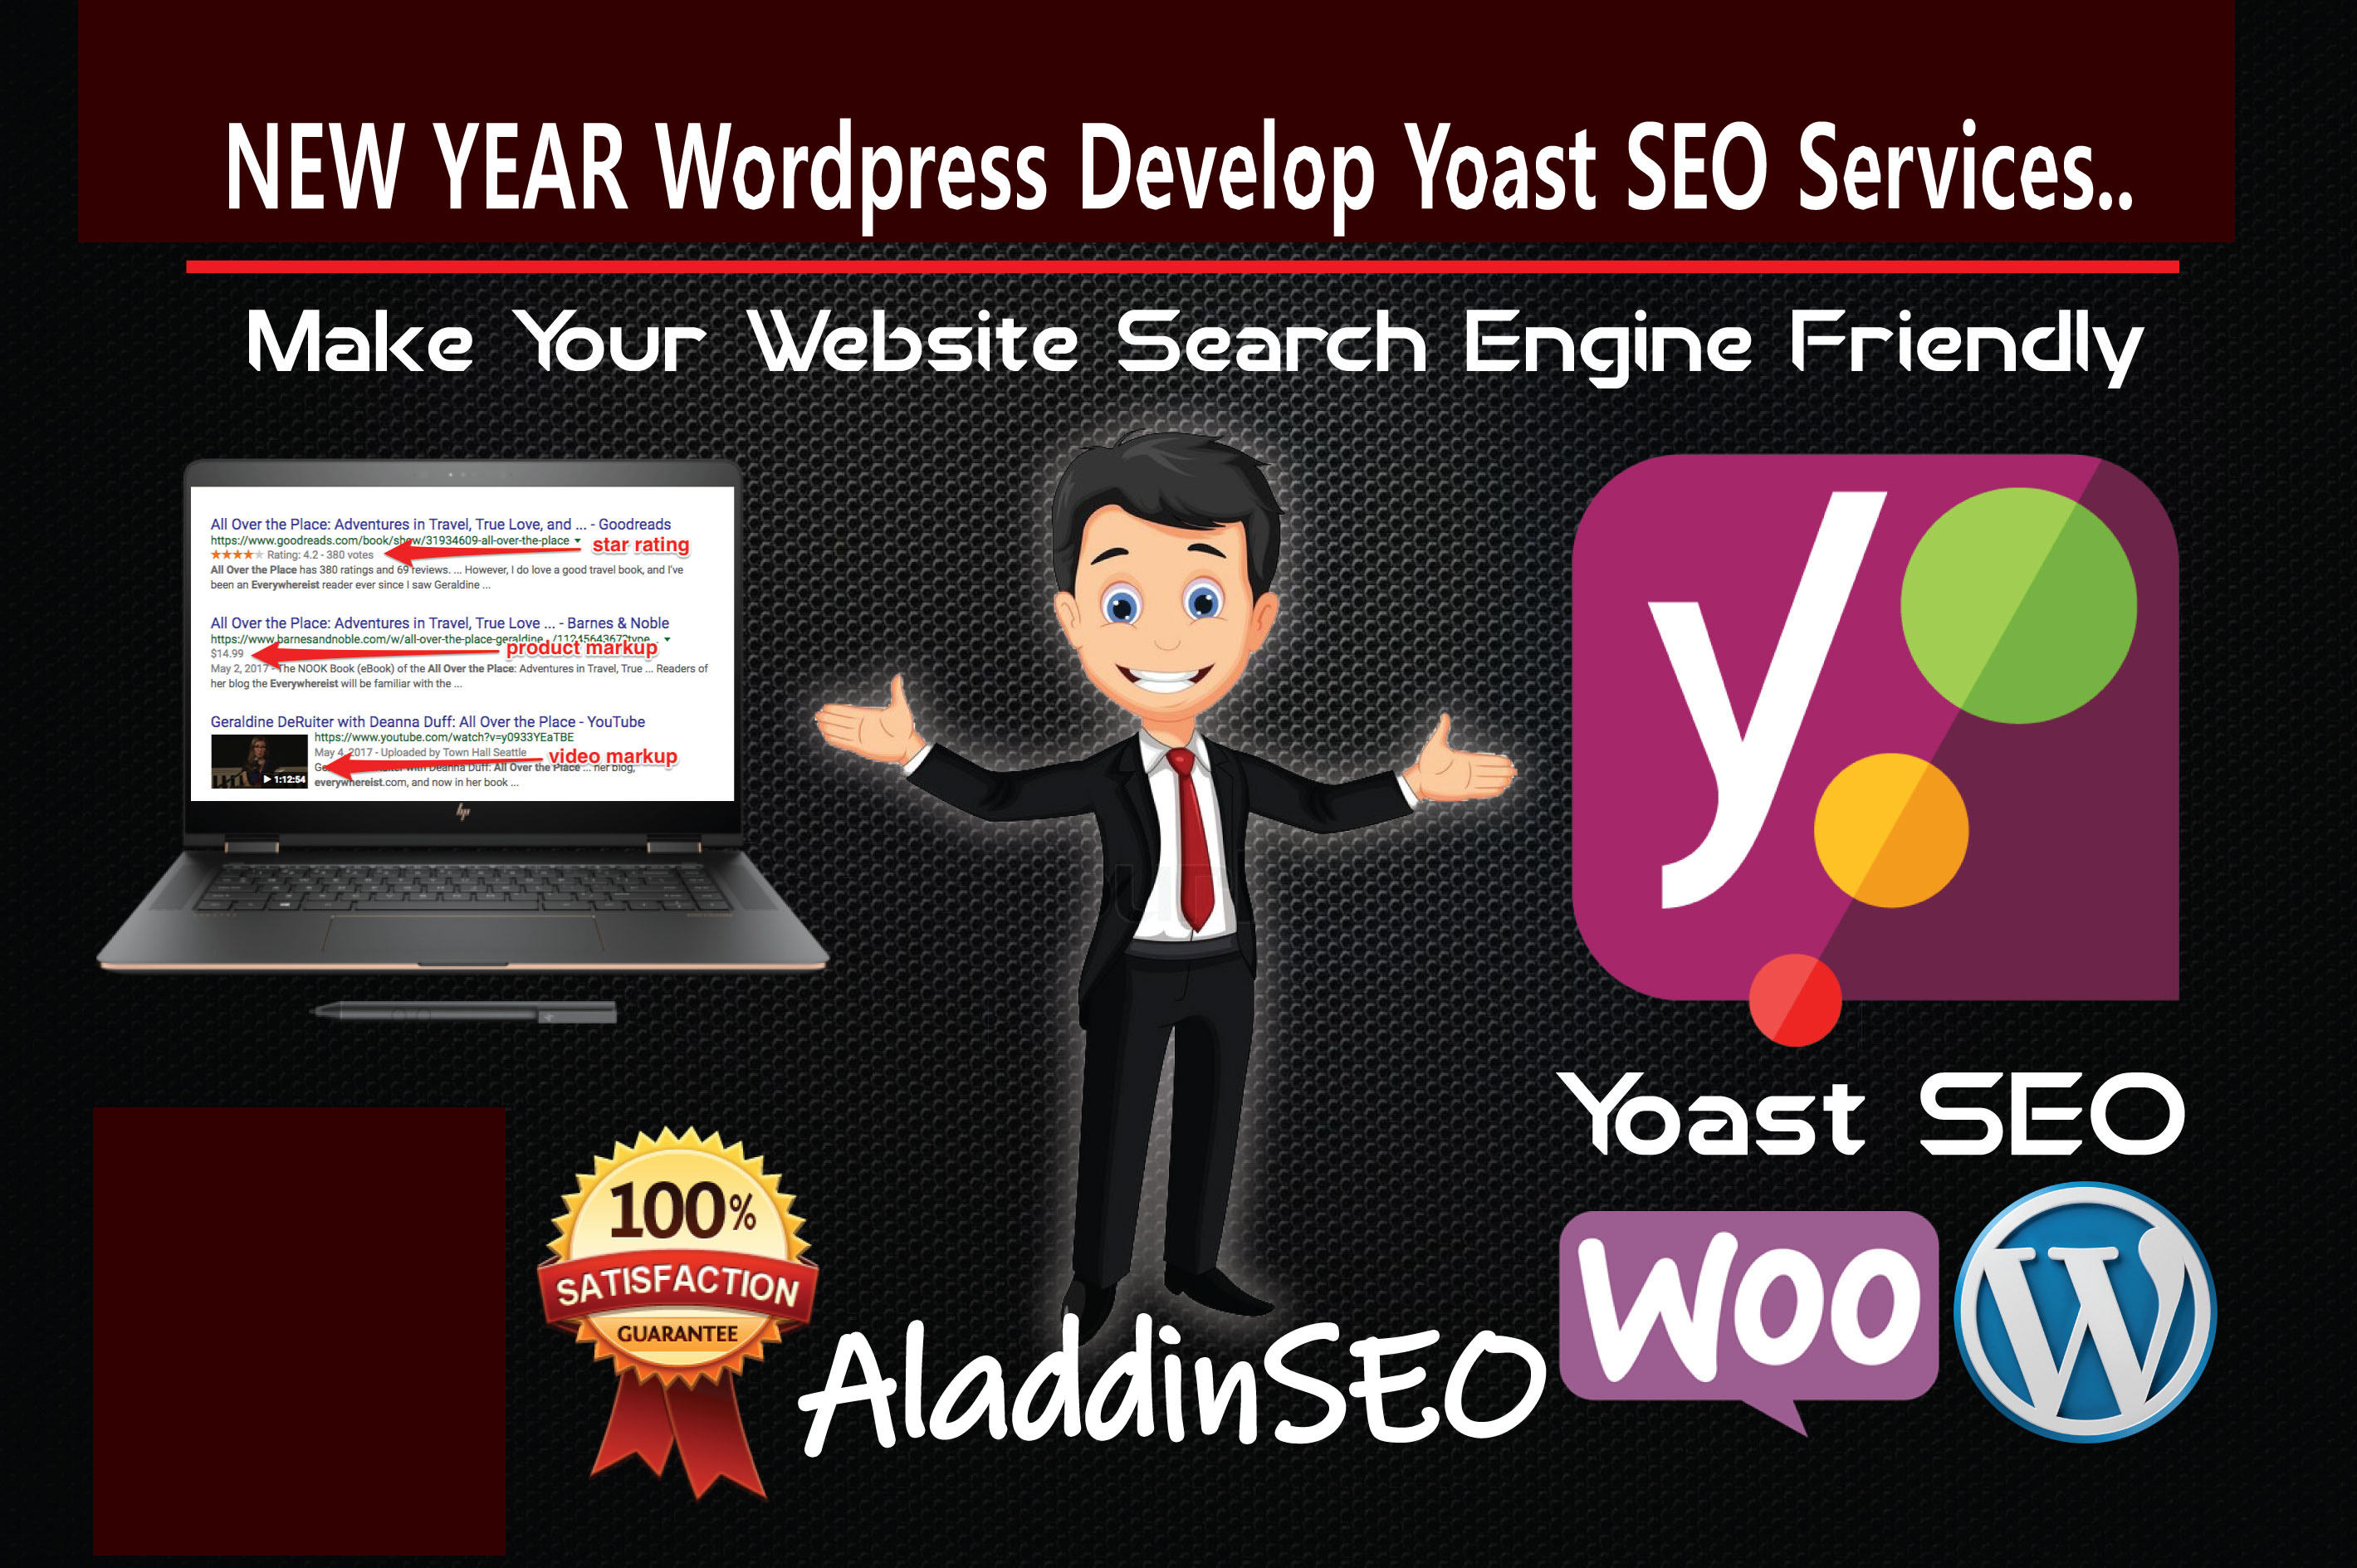 Google Development & Top Page Ranking Only AladdinSEO